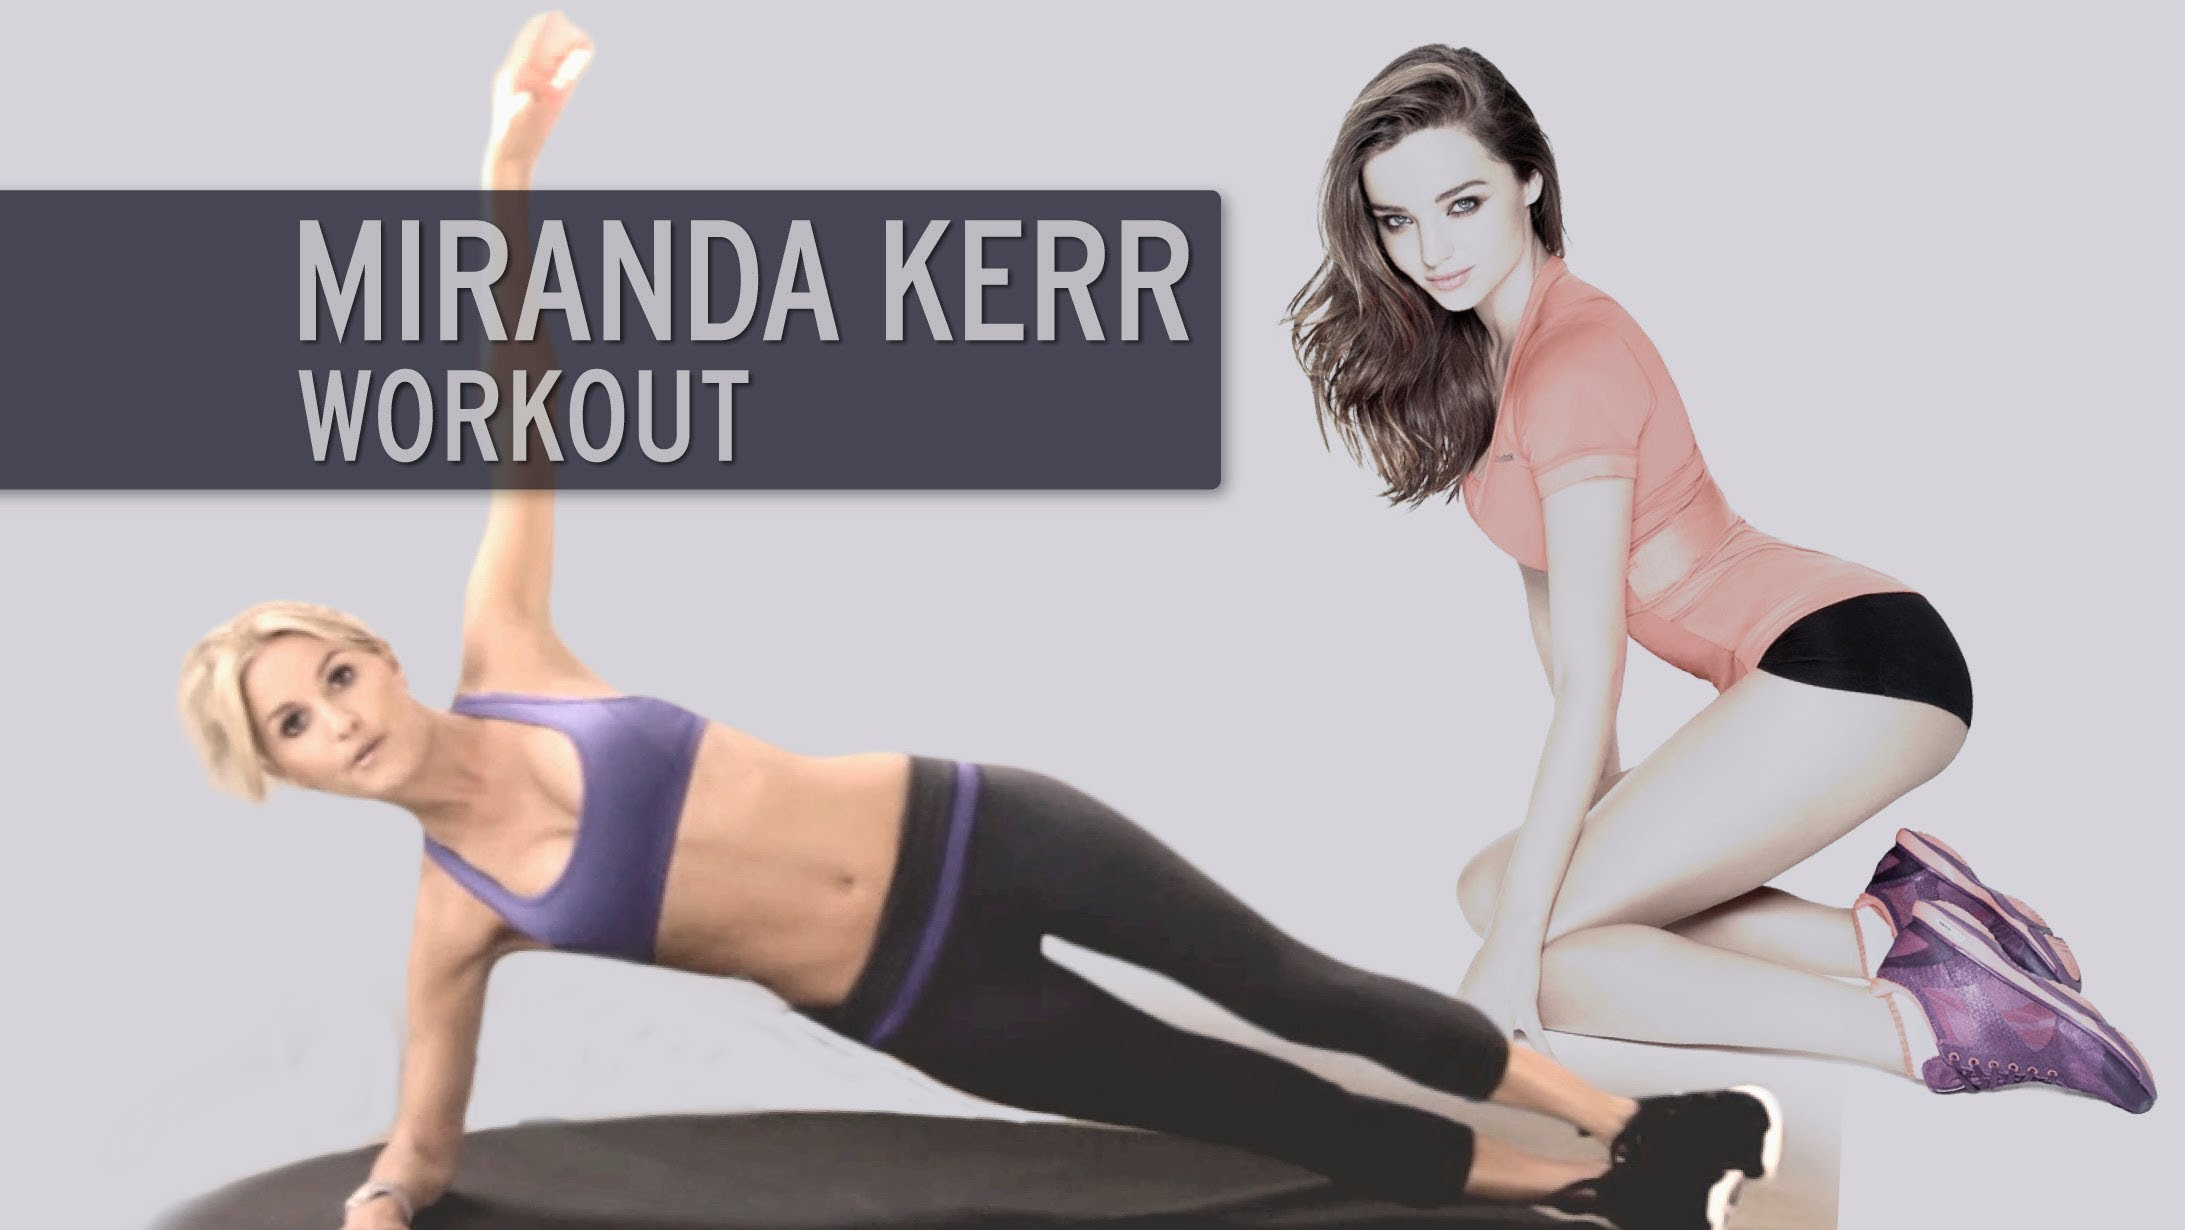 Rebecca Louise – The Miranda Kerr Workout